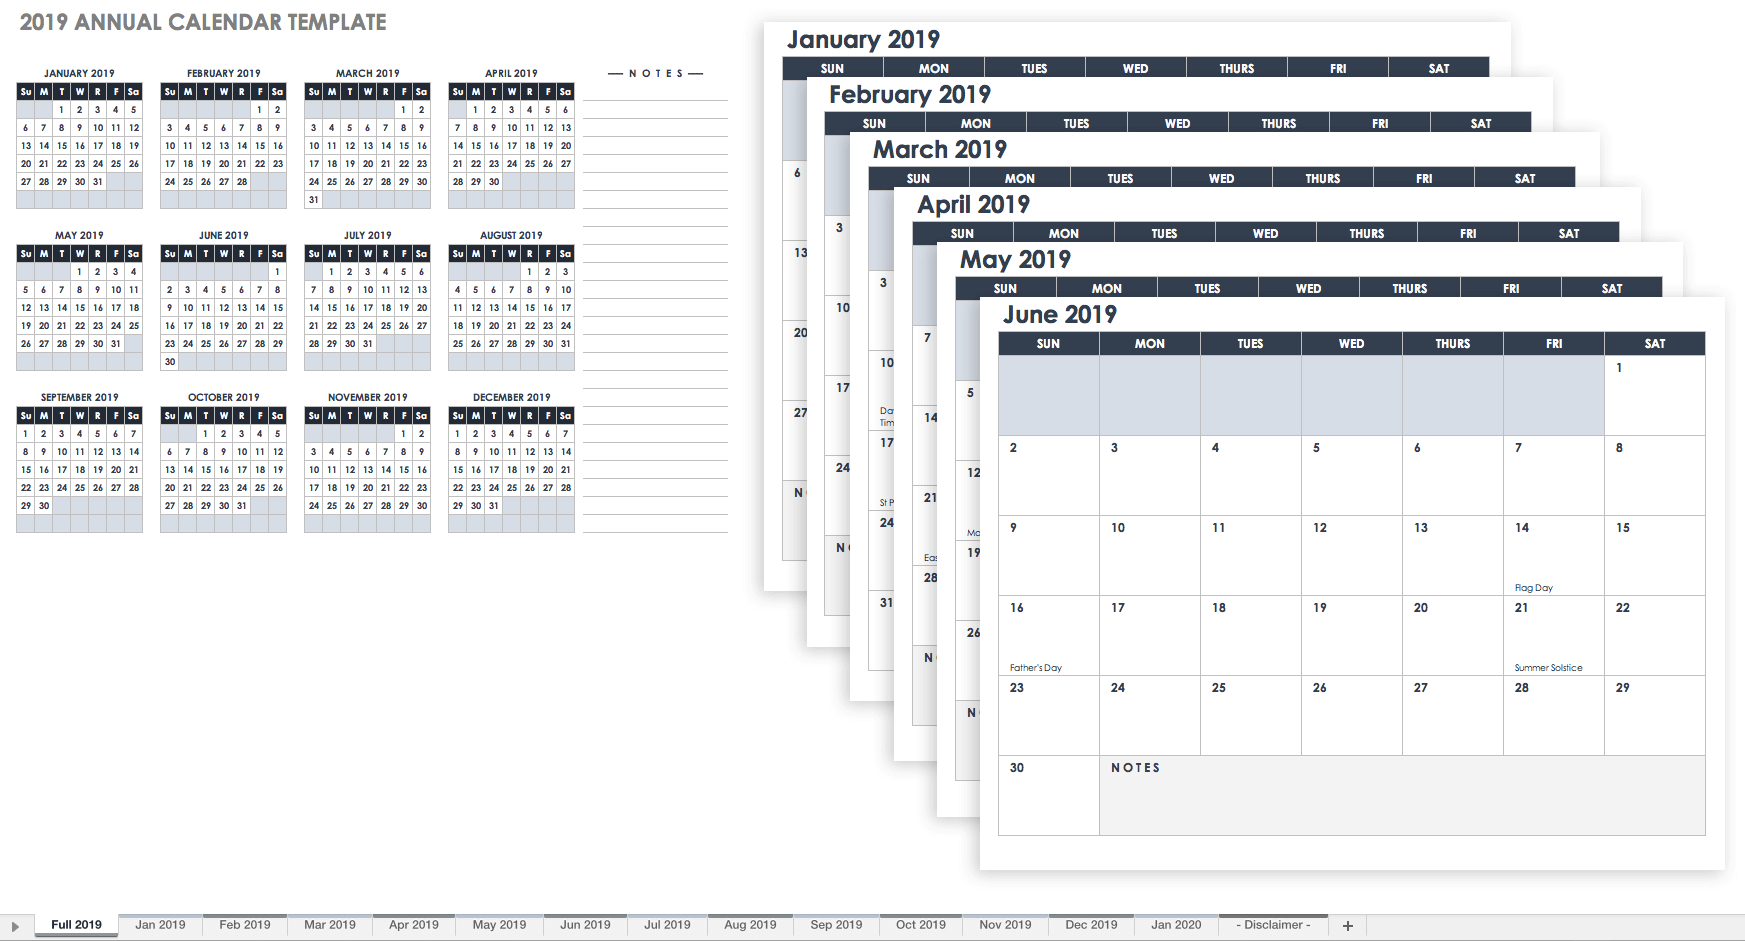 15 Free Monthly Calendar Templates | Smartsheet within Financial Calendar 2019/2020 With Week Numbers